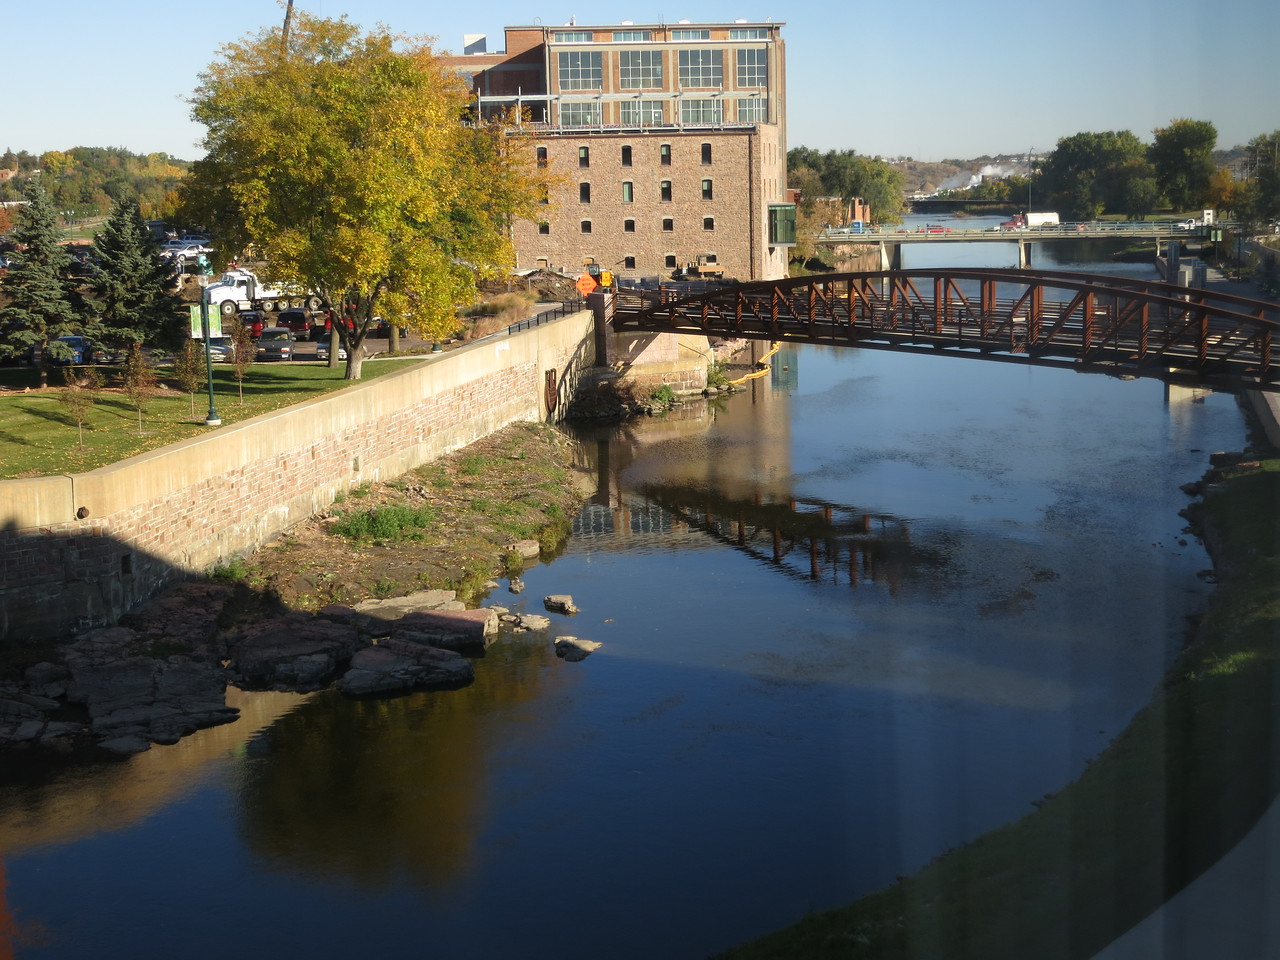 The view of the Big Sioux River from our County Inn hotel.<br /> October 18, 2013